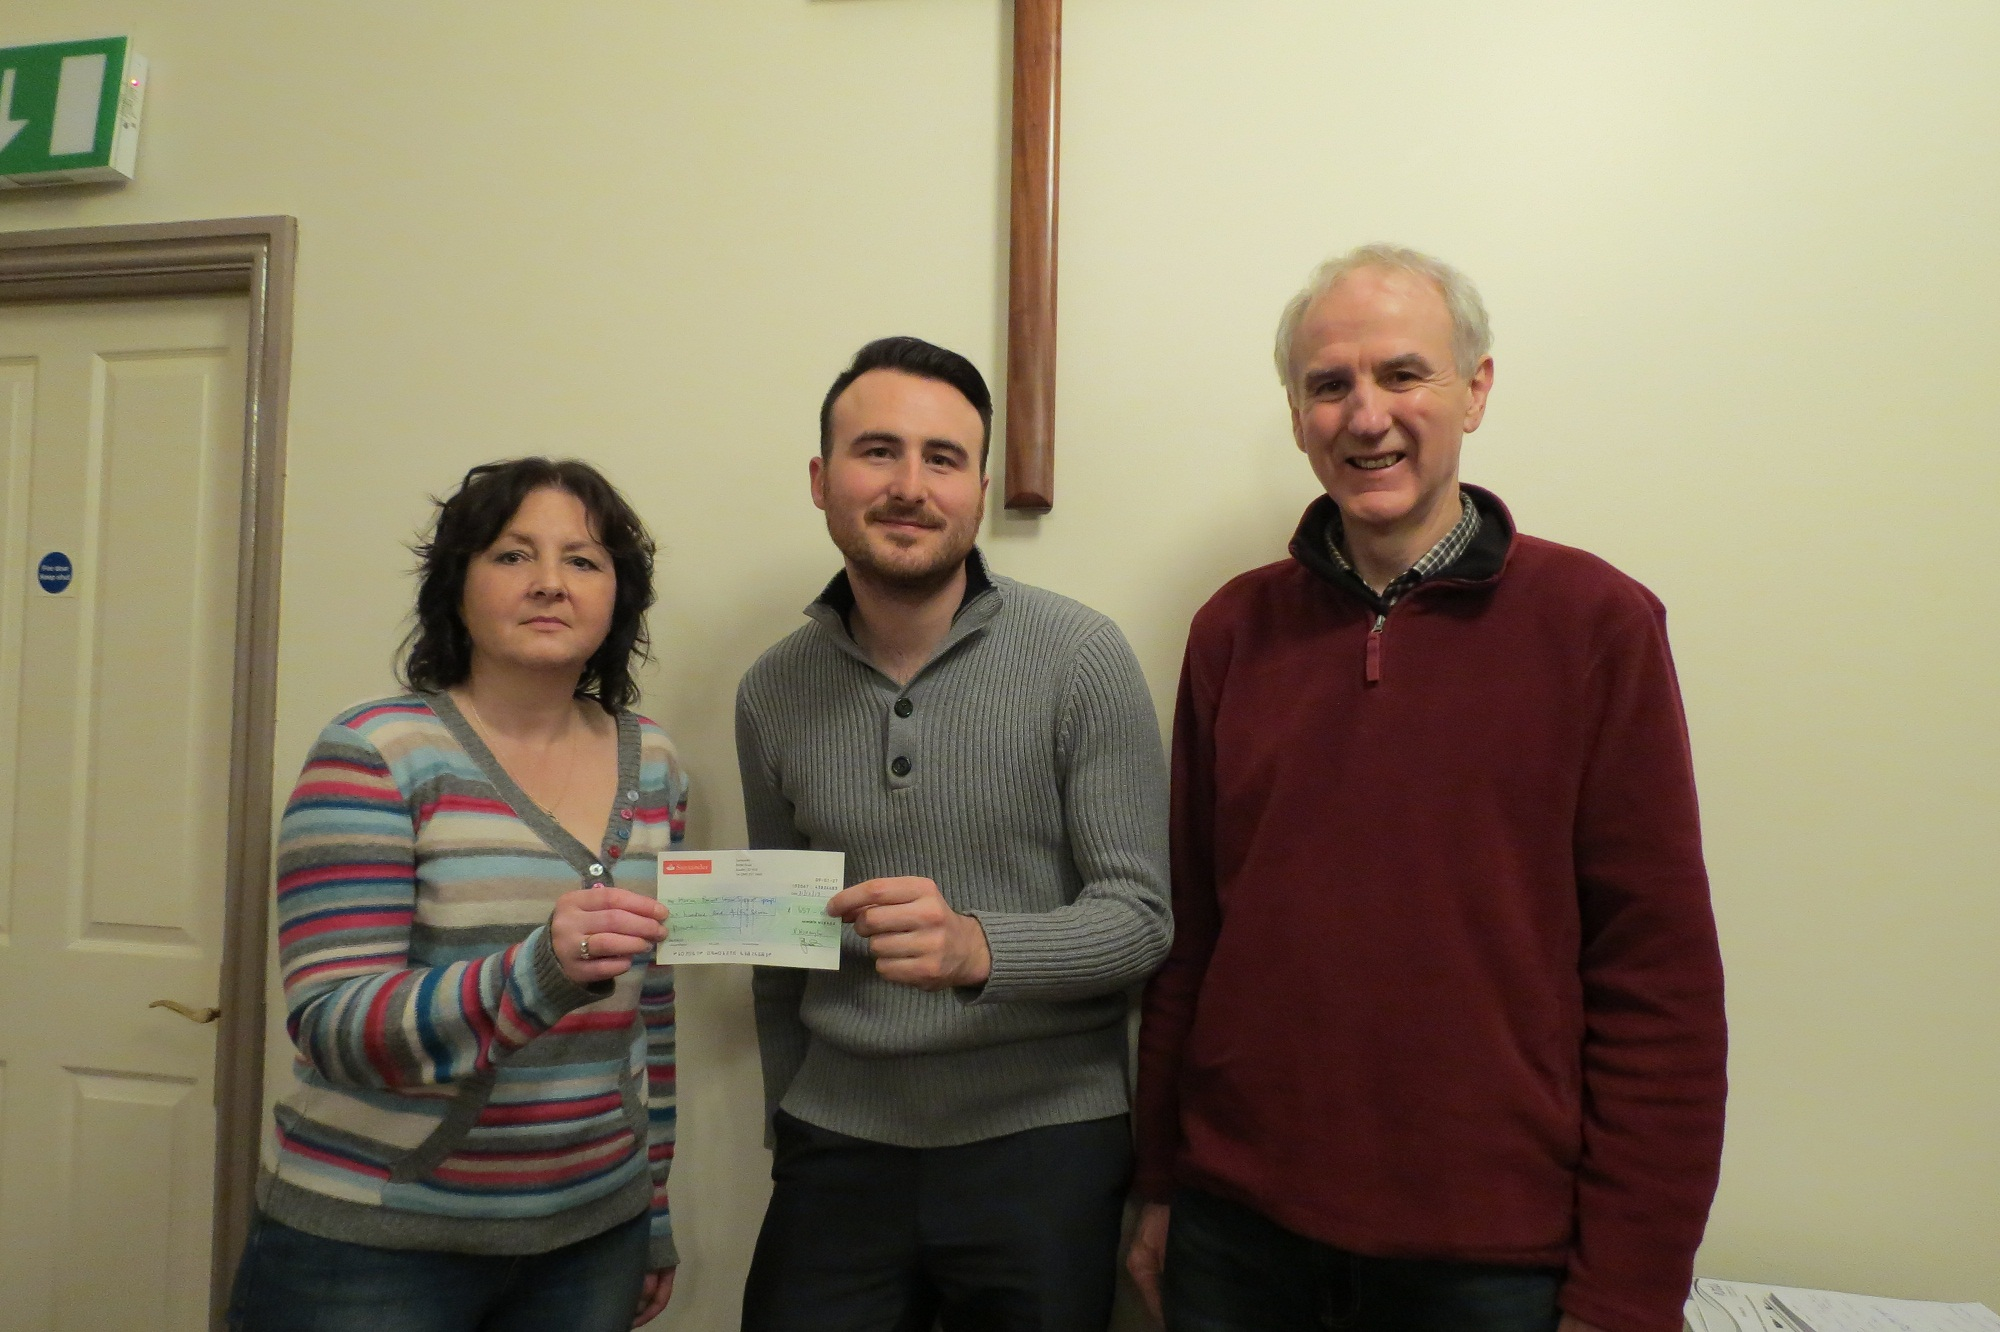 l Tom Robertshaw, senior fundraiser for Haven, is pictured (centre) receiving a cheque from Rebekah Day and society chairman Ron McGill, representing proceeds of the raffle held by Haworth West Lane Baptist Amateurs during their production of Princess Ida